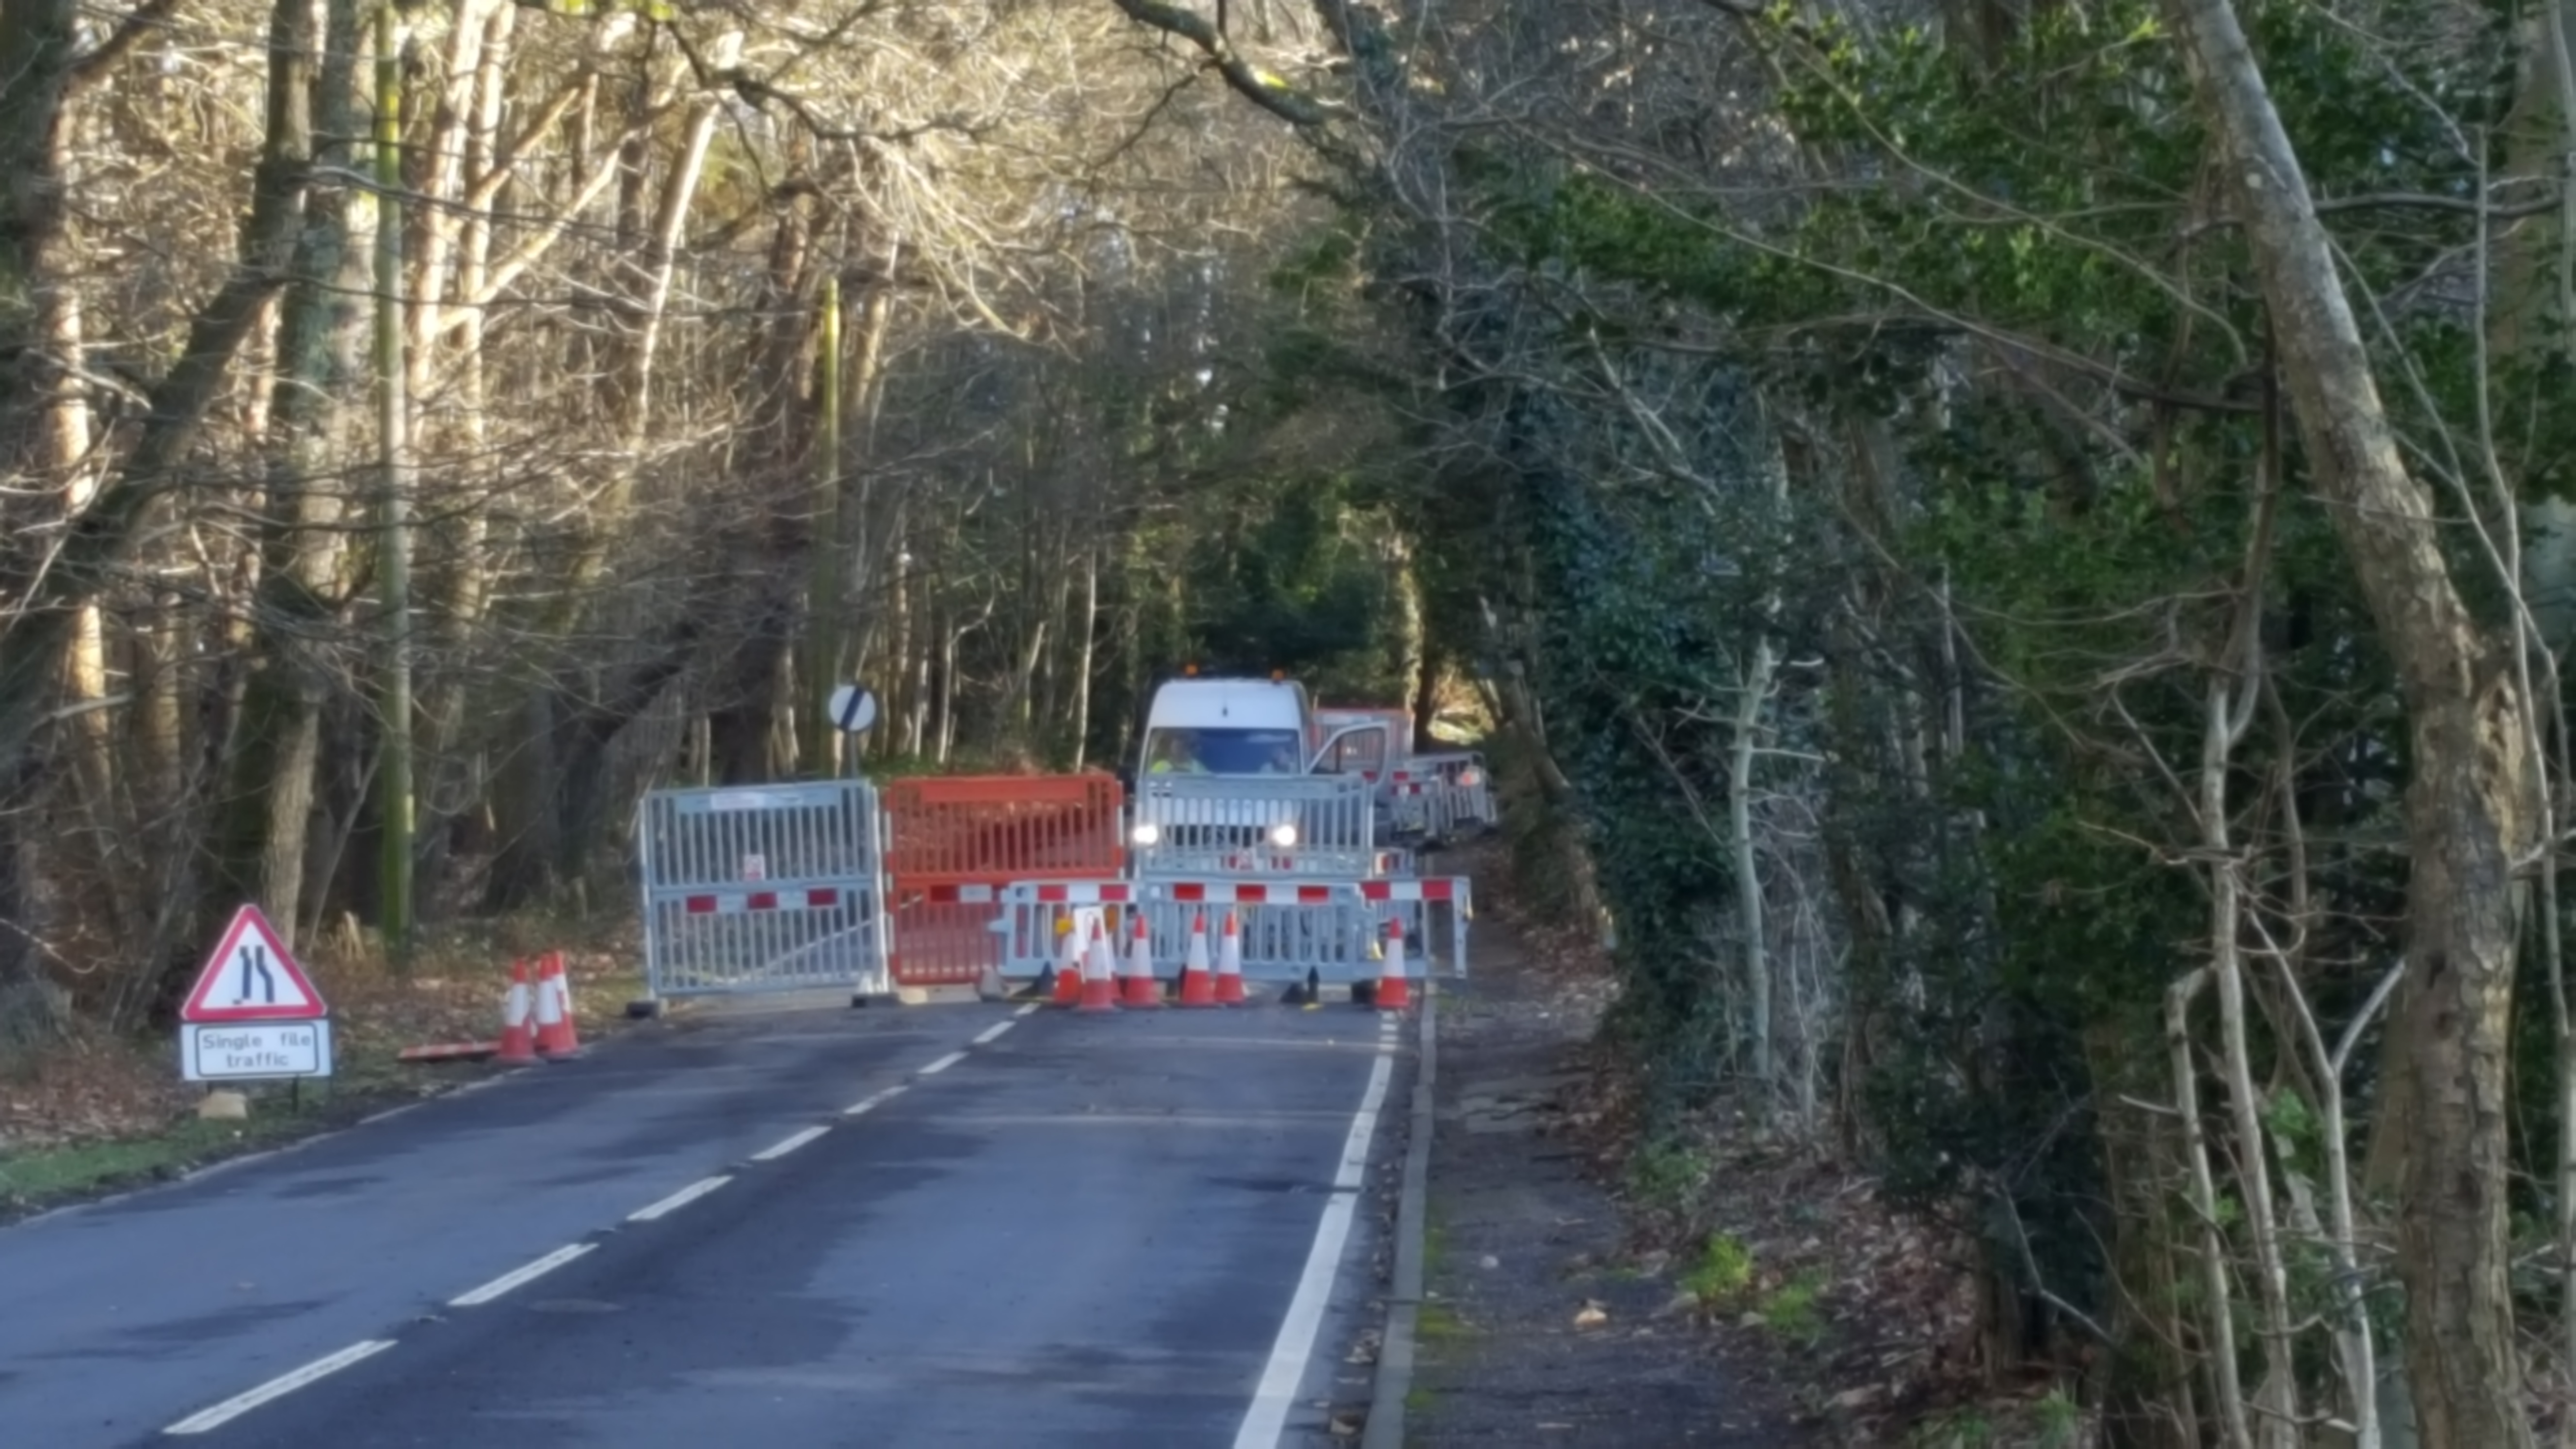 The A283 is likely to be closed possibly until Thursday, near Wyncombe Hill (the hill continuation from the Fleet towards Pulborough). This is due to work to repair a gas leak on the main supply. The sgn no. for information is 0800 912 1700.  However any updates from them will be posted here when  they are received.